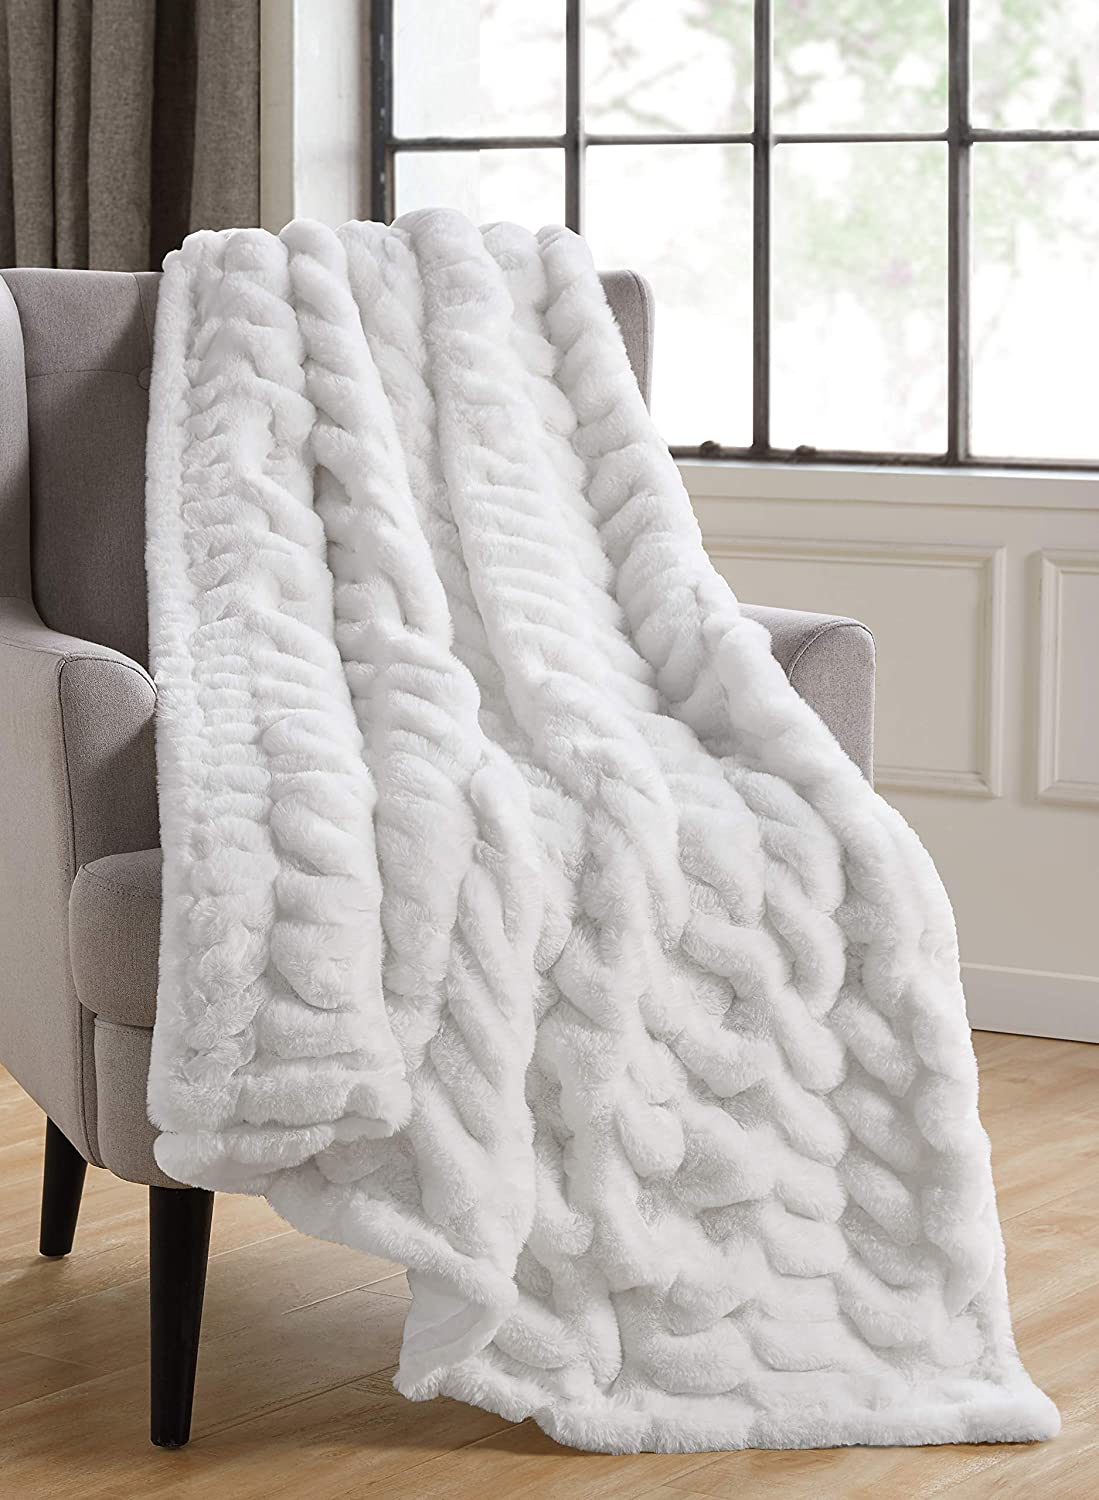 Tahari Super beauty product restock quality top! Home Isla Bedding Max 53% OFF Modern Designe Luxurious Collection